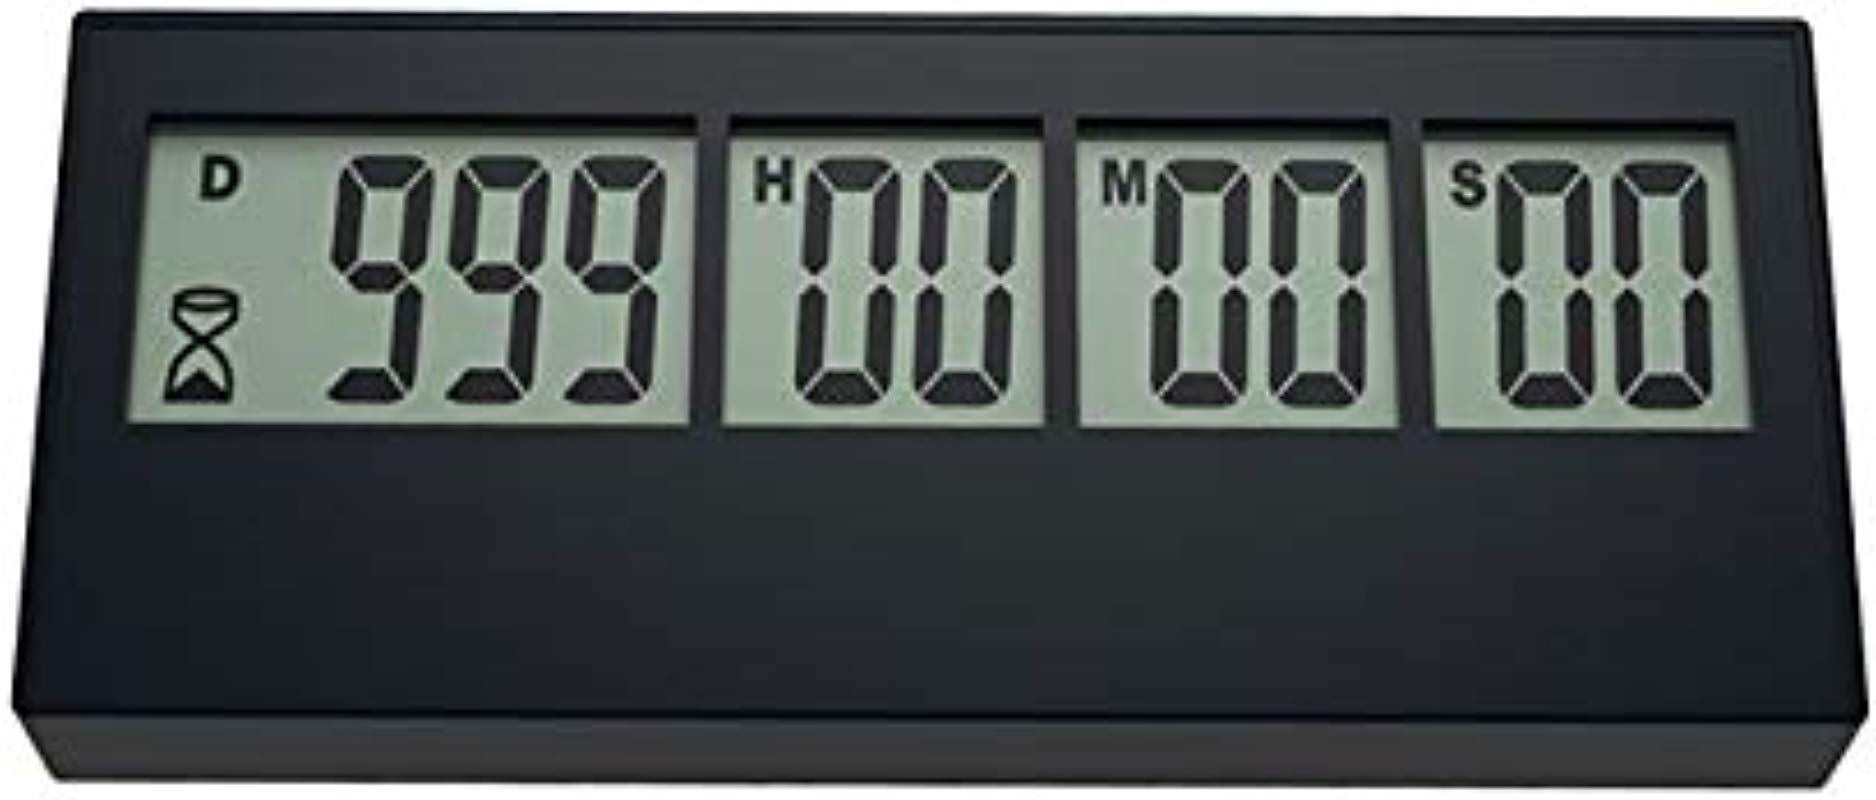 999 Day Countdown Timer QWM Digital Countdown Timer Long Time Countdown Function Can Be Used For Cooking Teacher Vacation Retirement Wedding Lab